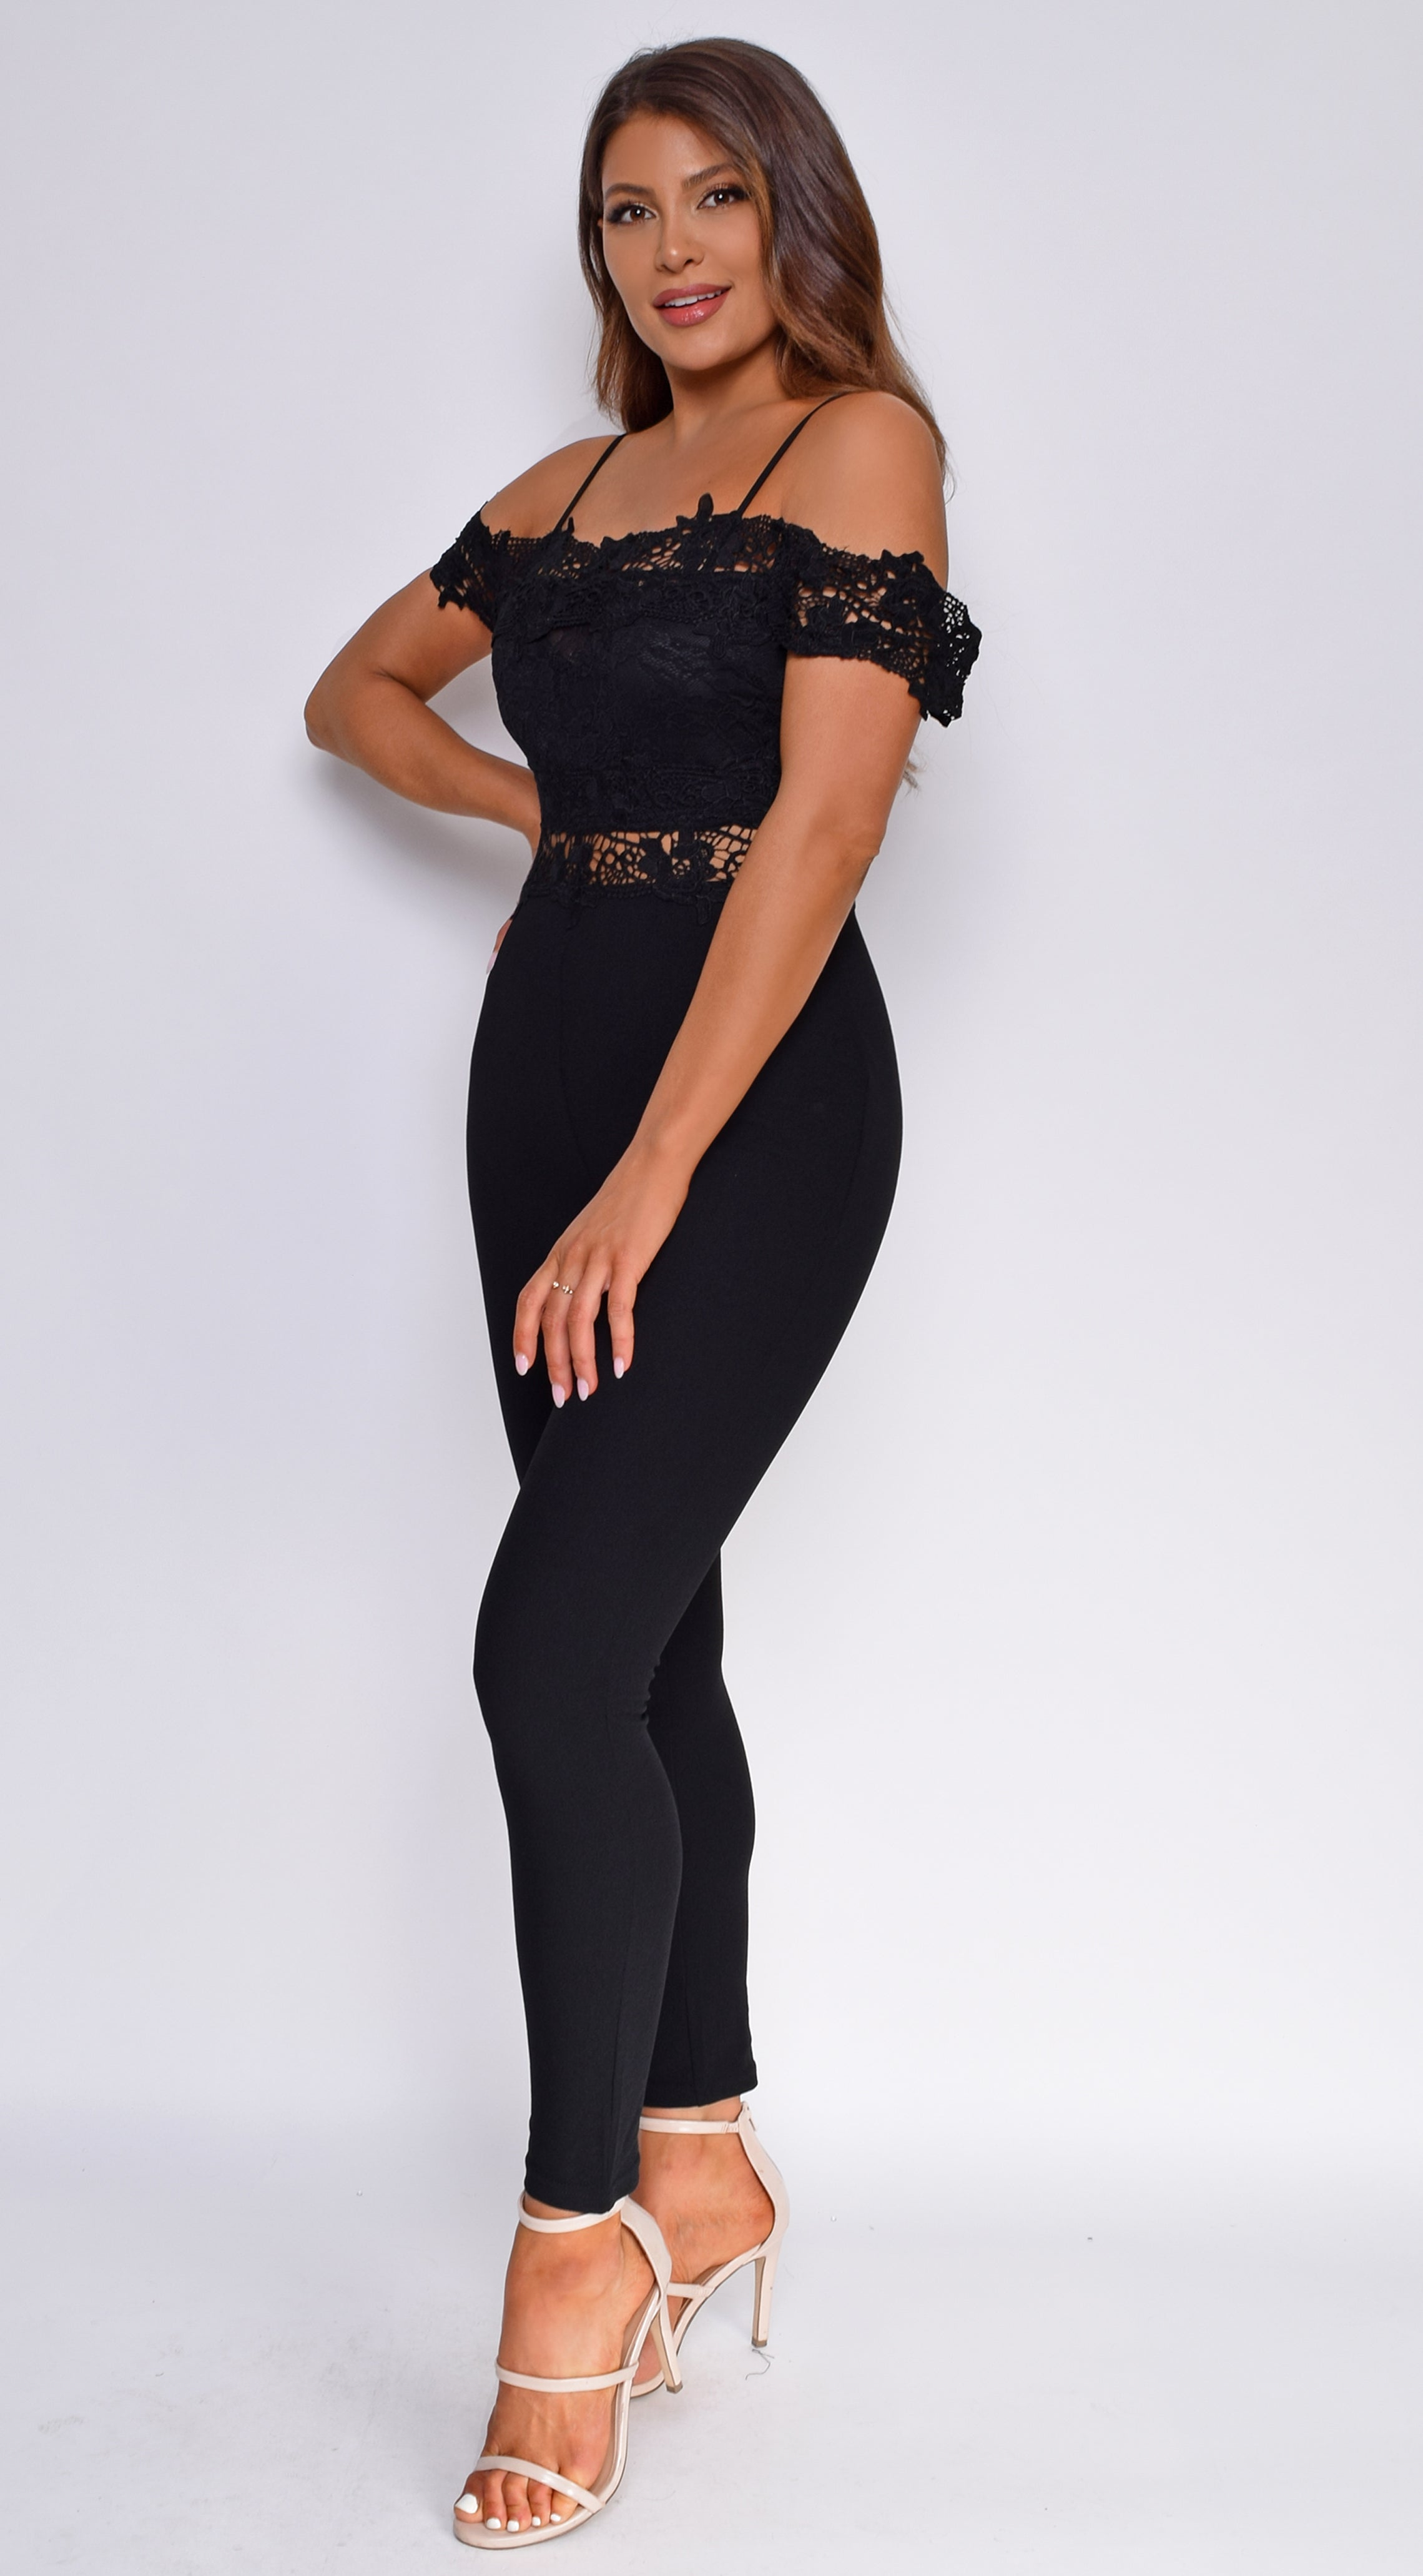 Drema Black Crochet Lace Off Shoulder Jumpsuit